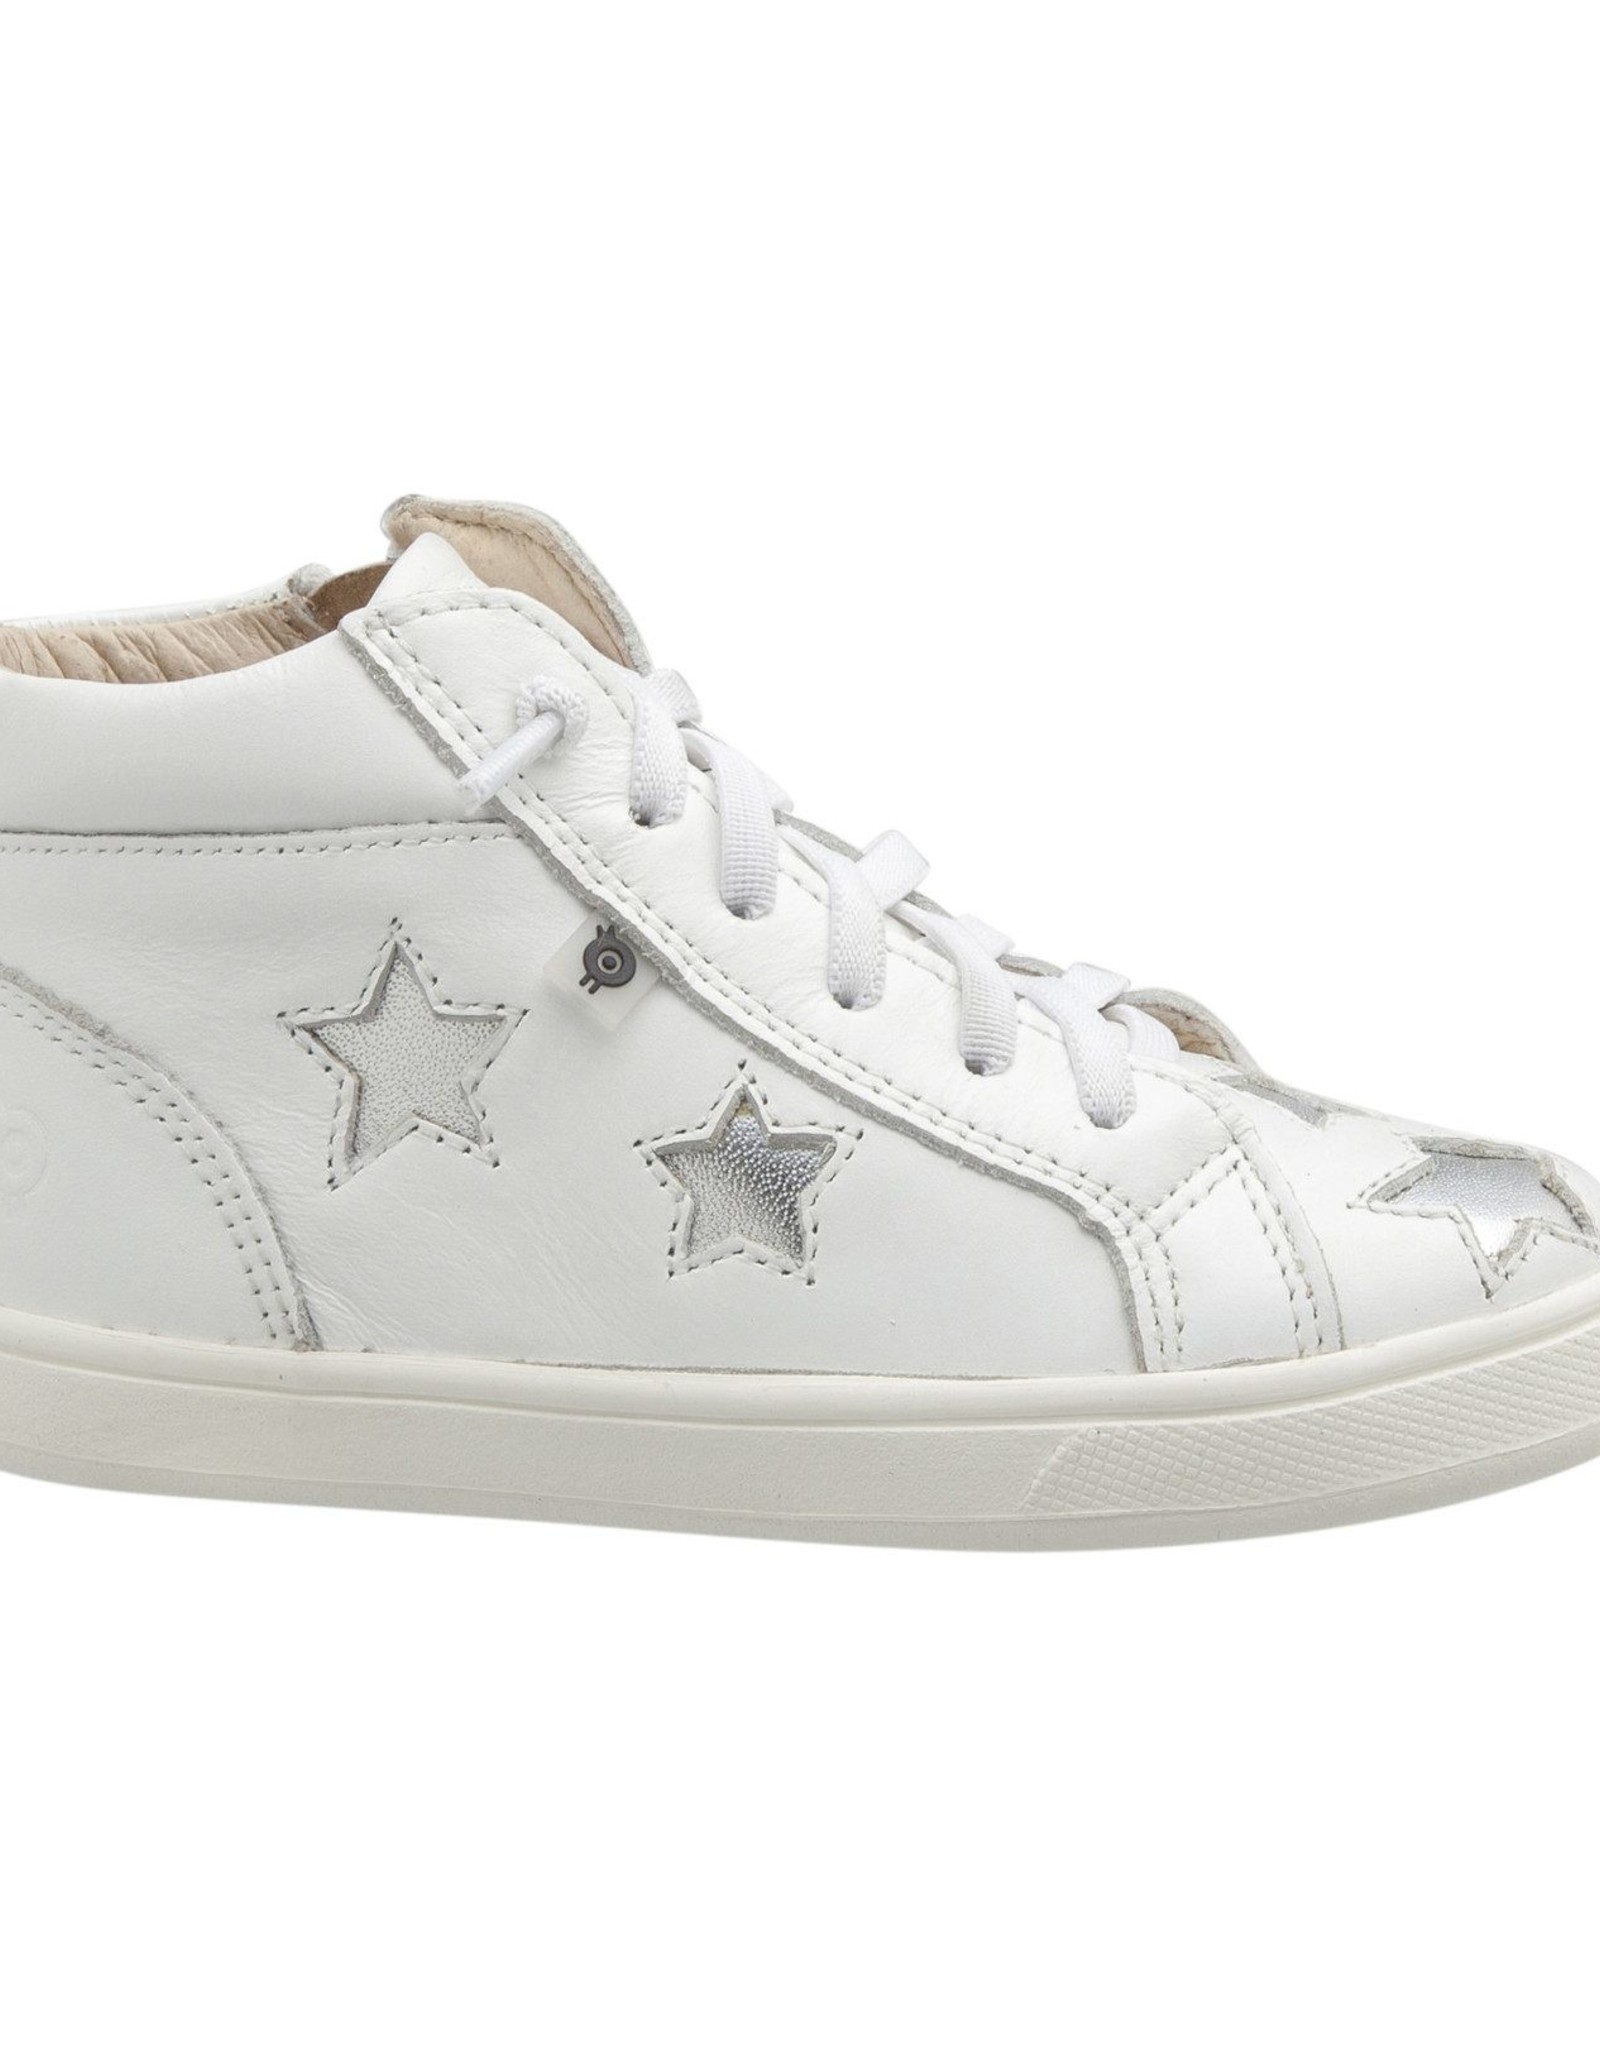 old soles Old Soles Starry Sneakers